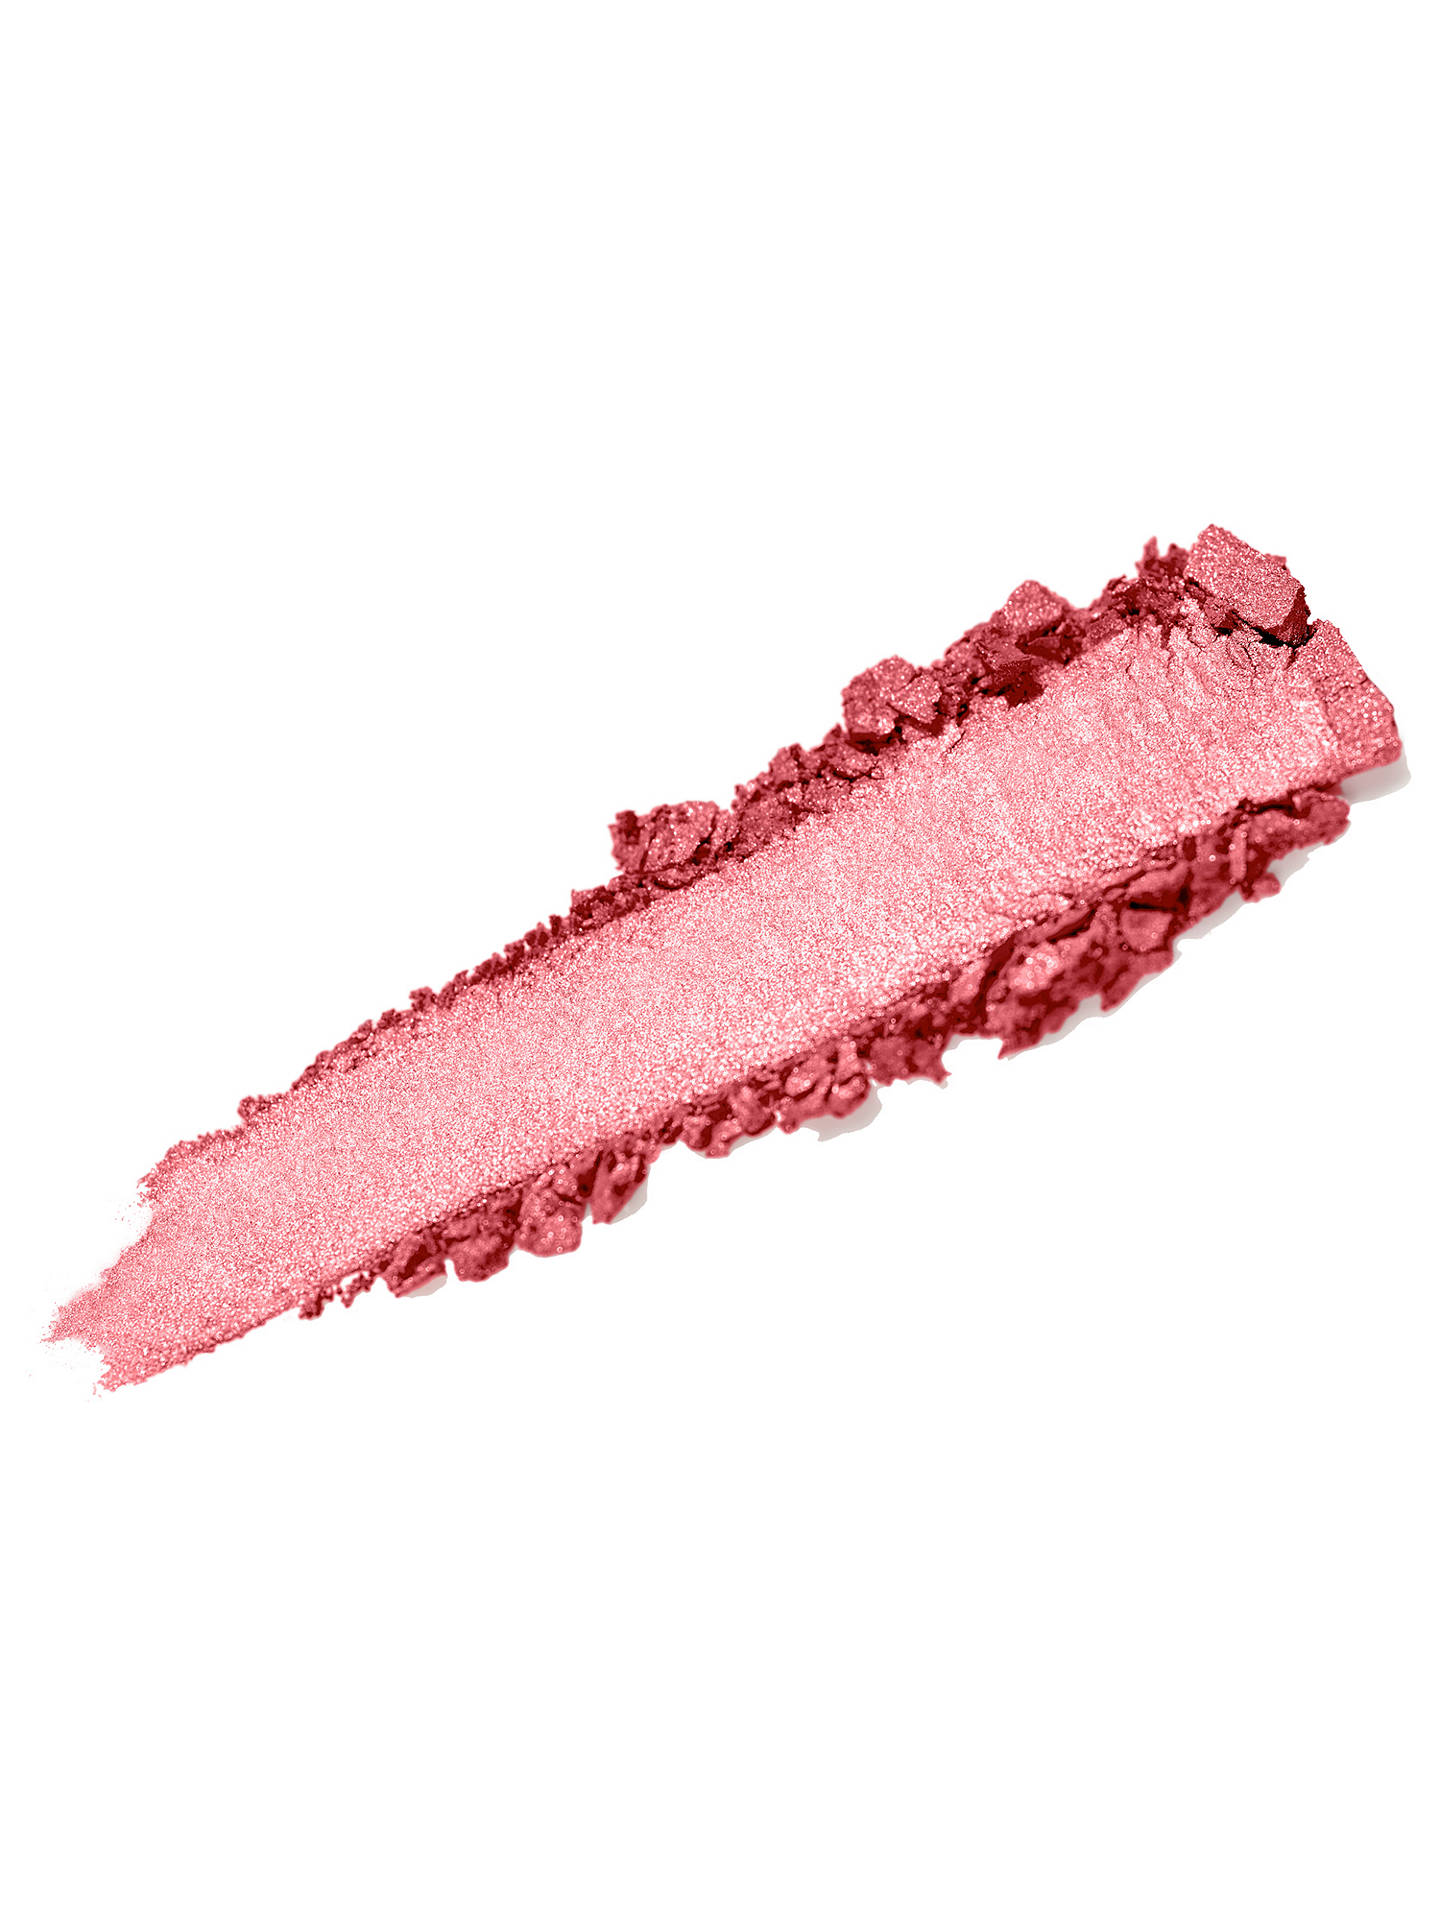 BuyBECCA Shimmering Skin Perfector™ Luminous Blush, Camellia Online at johnlewis.com